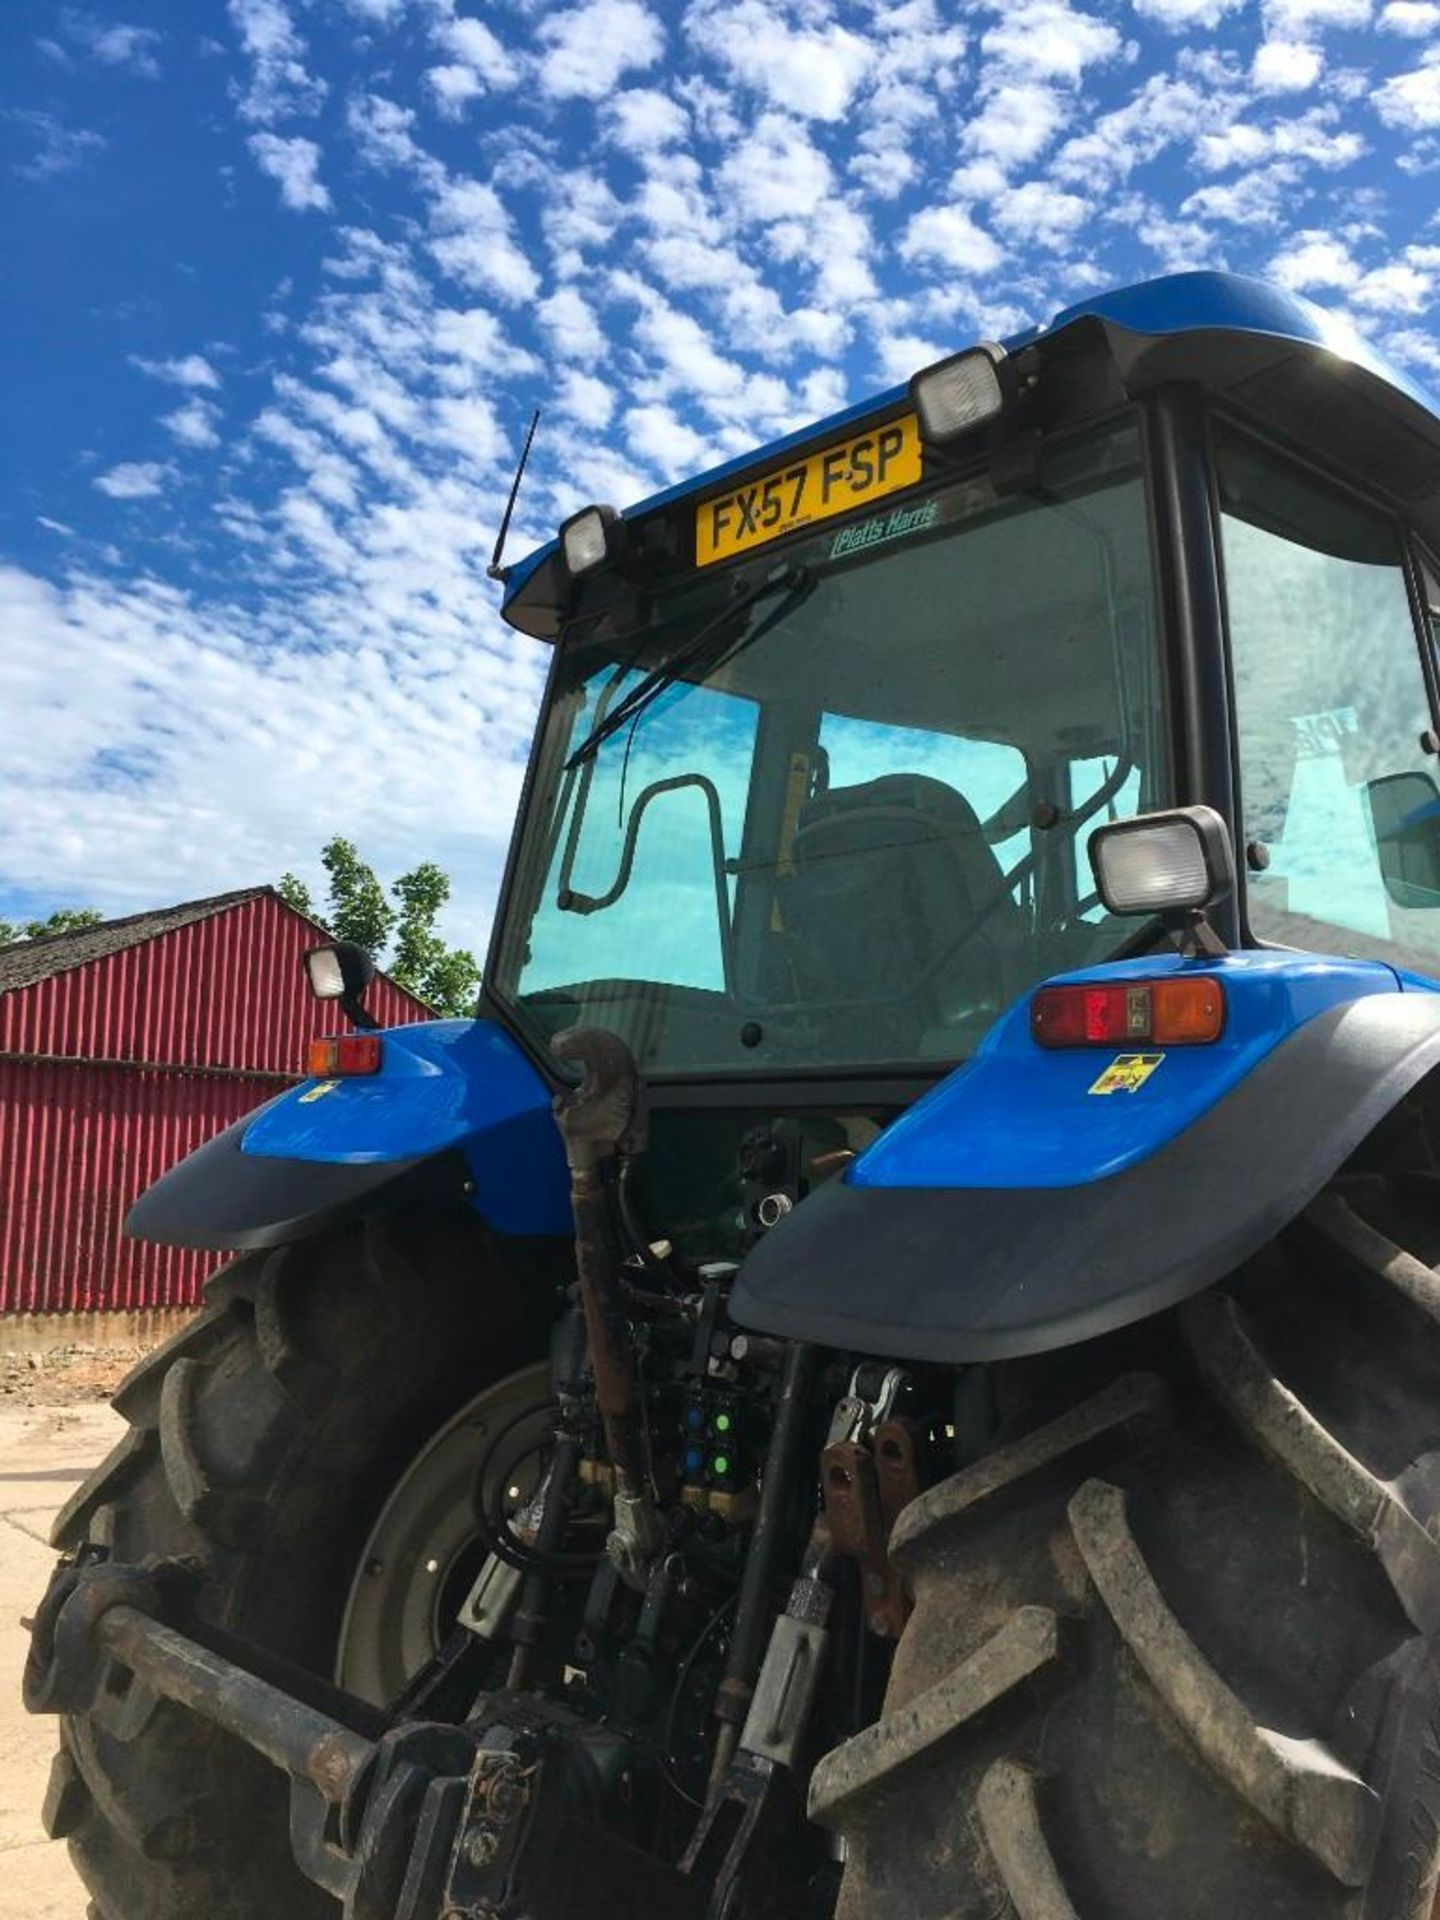 2007 New Holland TM155 tractor with range command gear box, 4 spool valves, push out pick up hitch, - Image 9 of 12